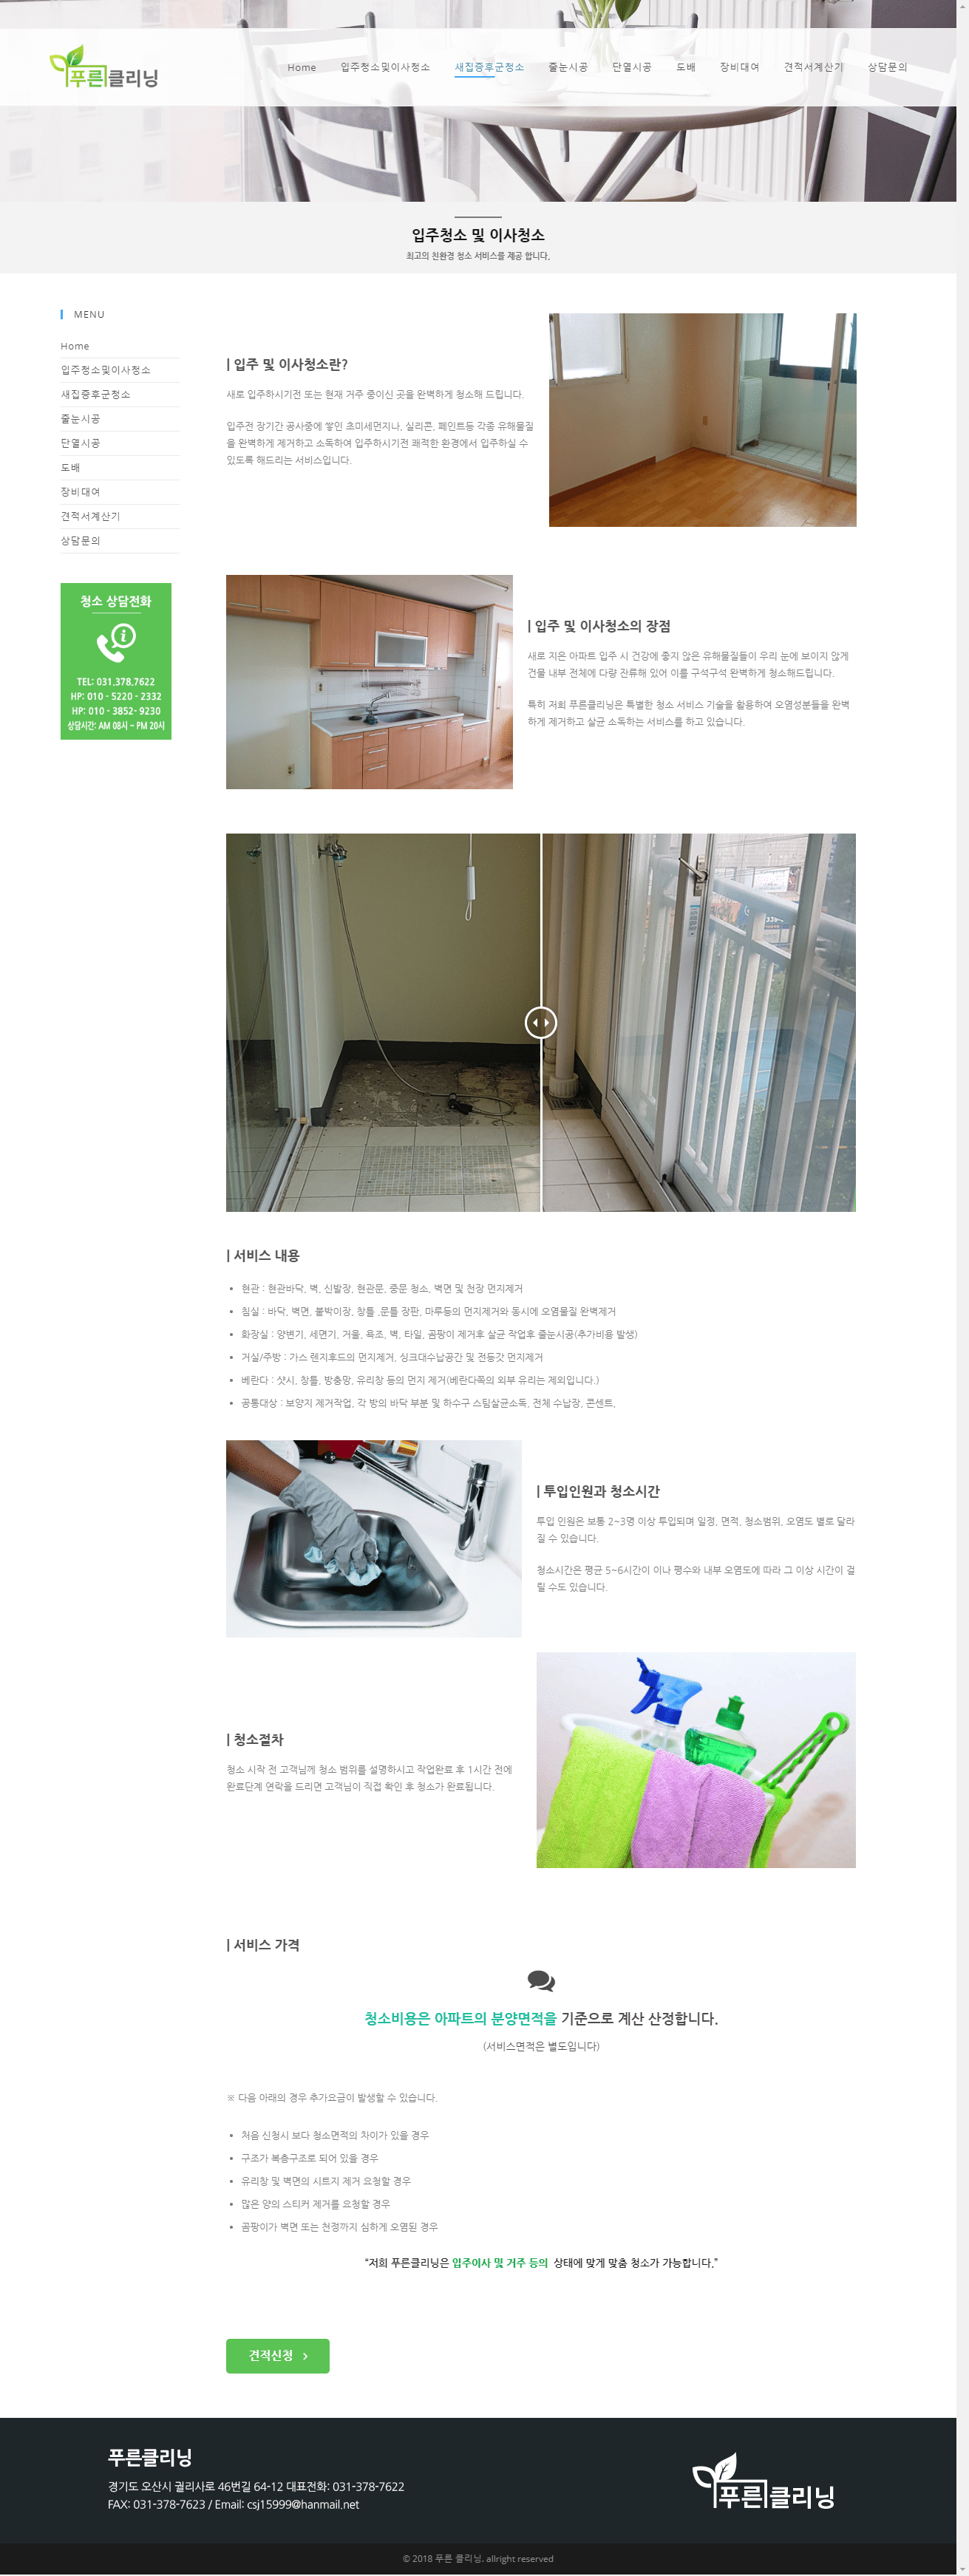 pureuncleaning.co .kr  page id171desktop 1